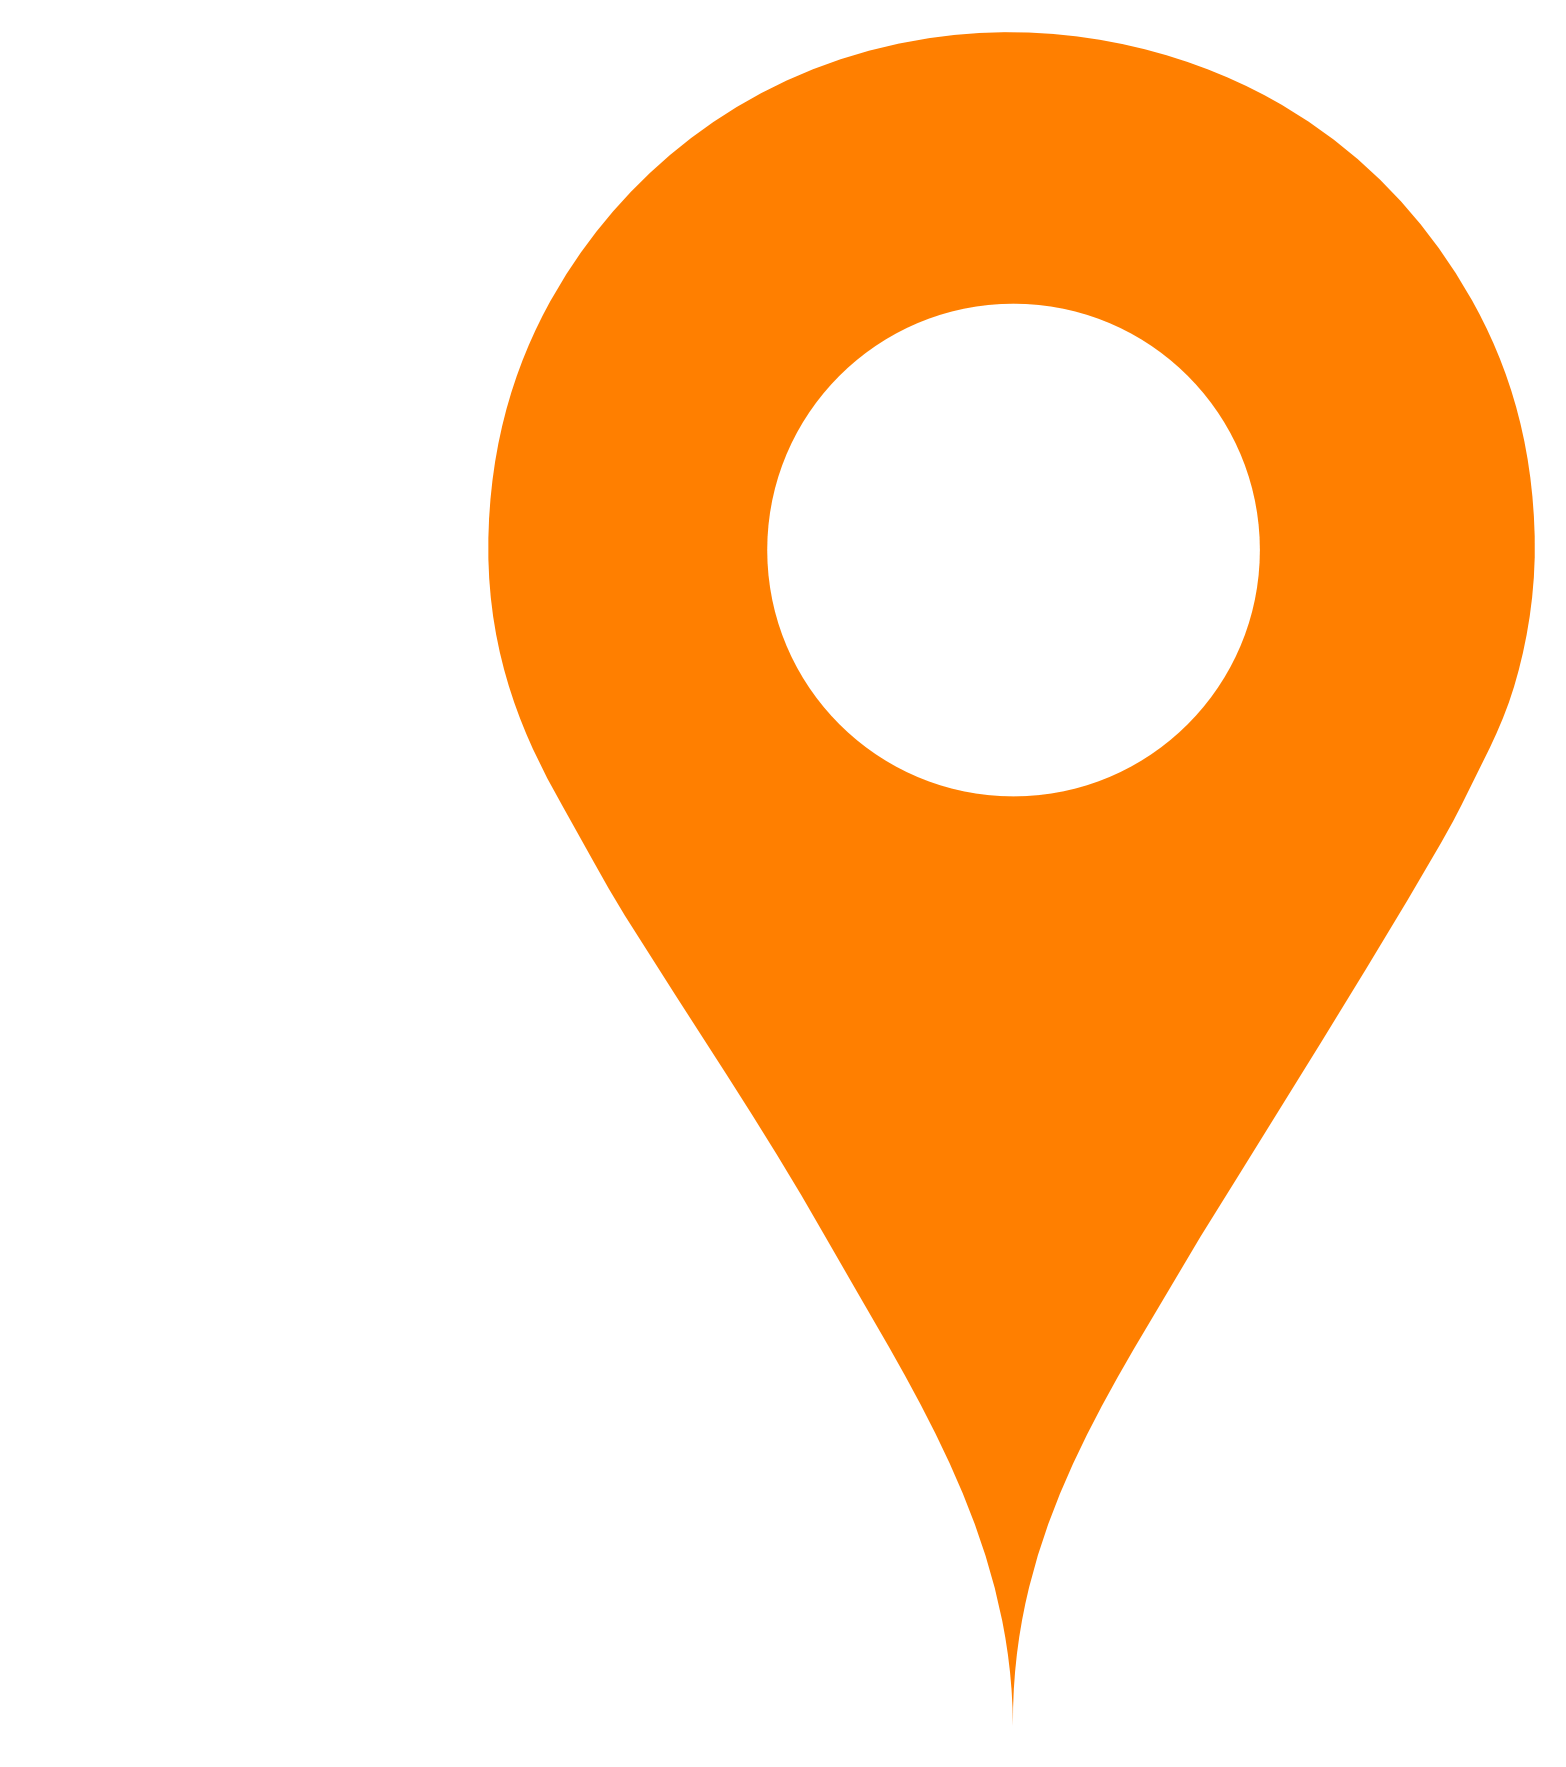 orange map pin transparent png stickpng #21473